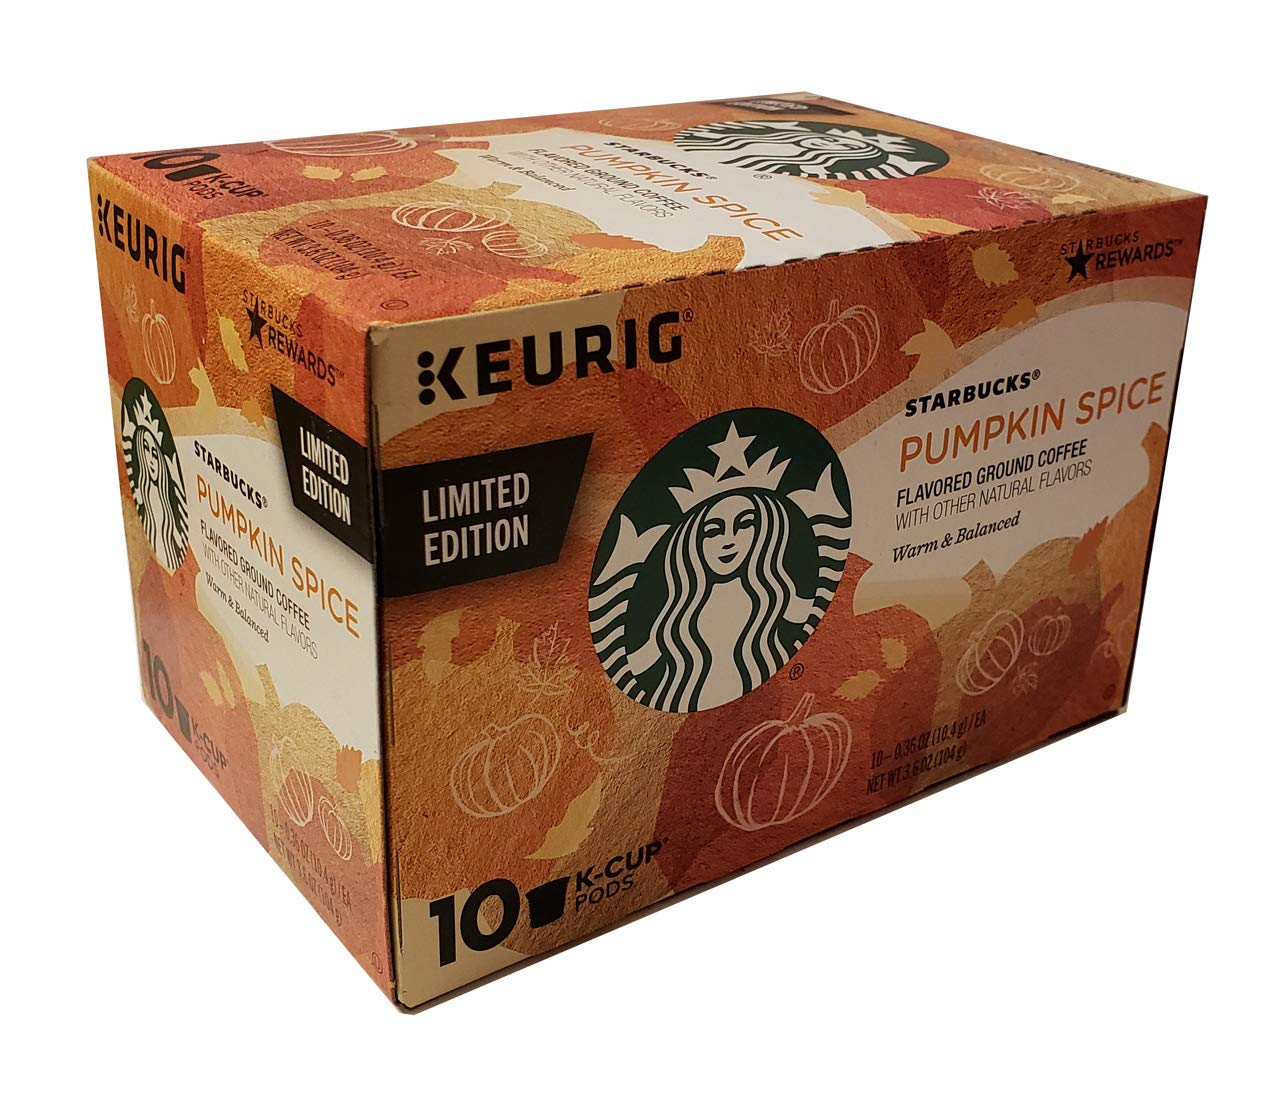 Starbucks Pumpkin Spice Flavored Ground Coffee 1 box of 10 K-Cup Single Serve Pods, 1 box of 10